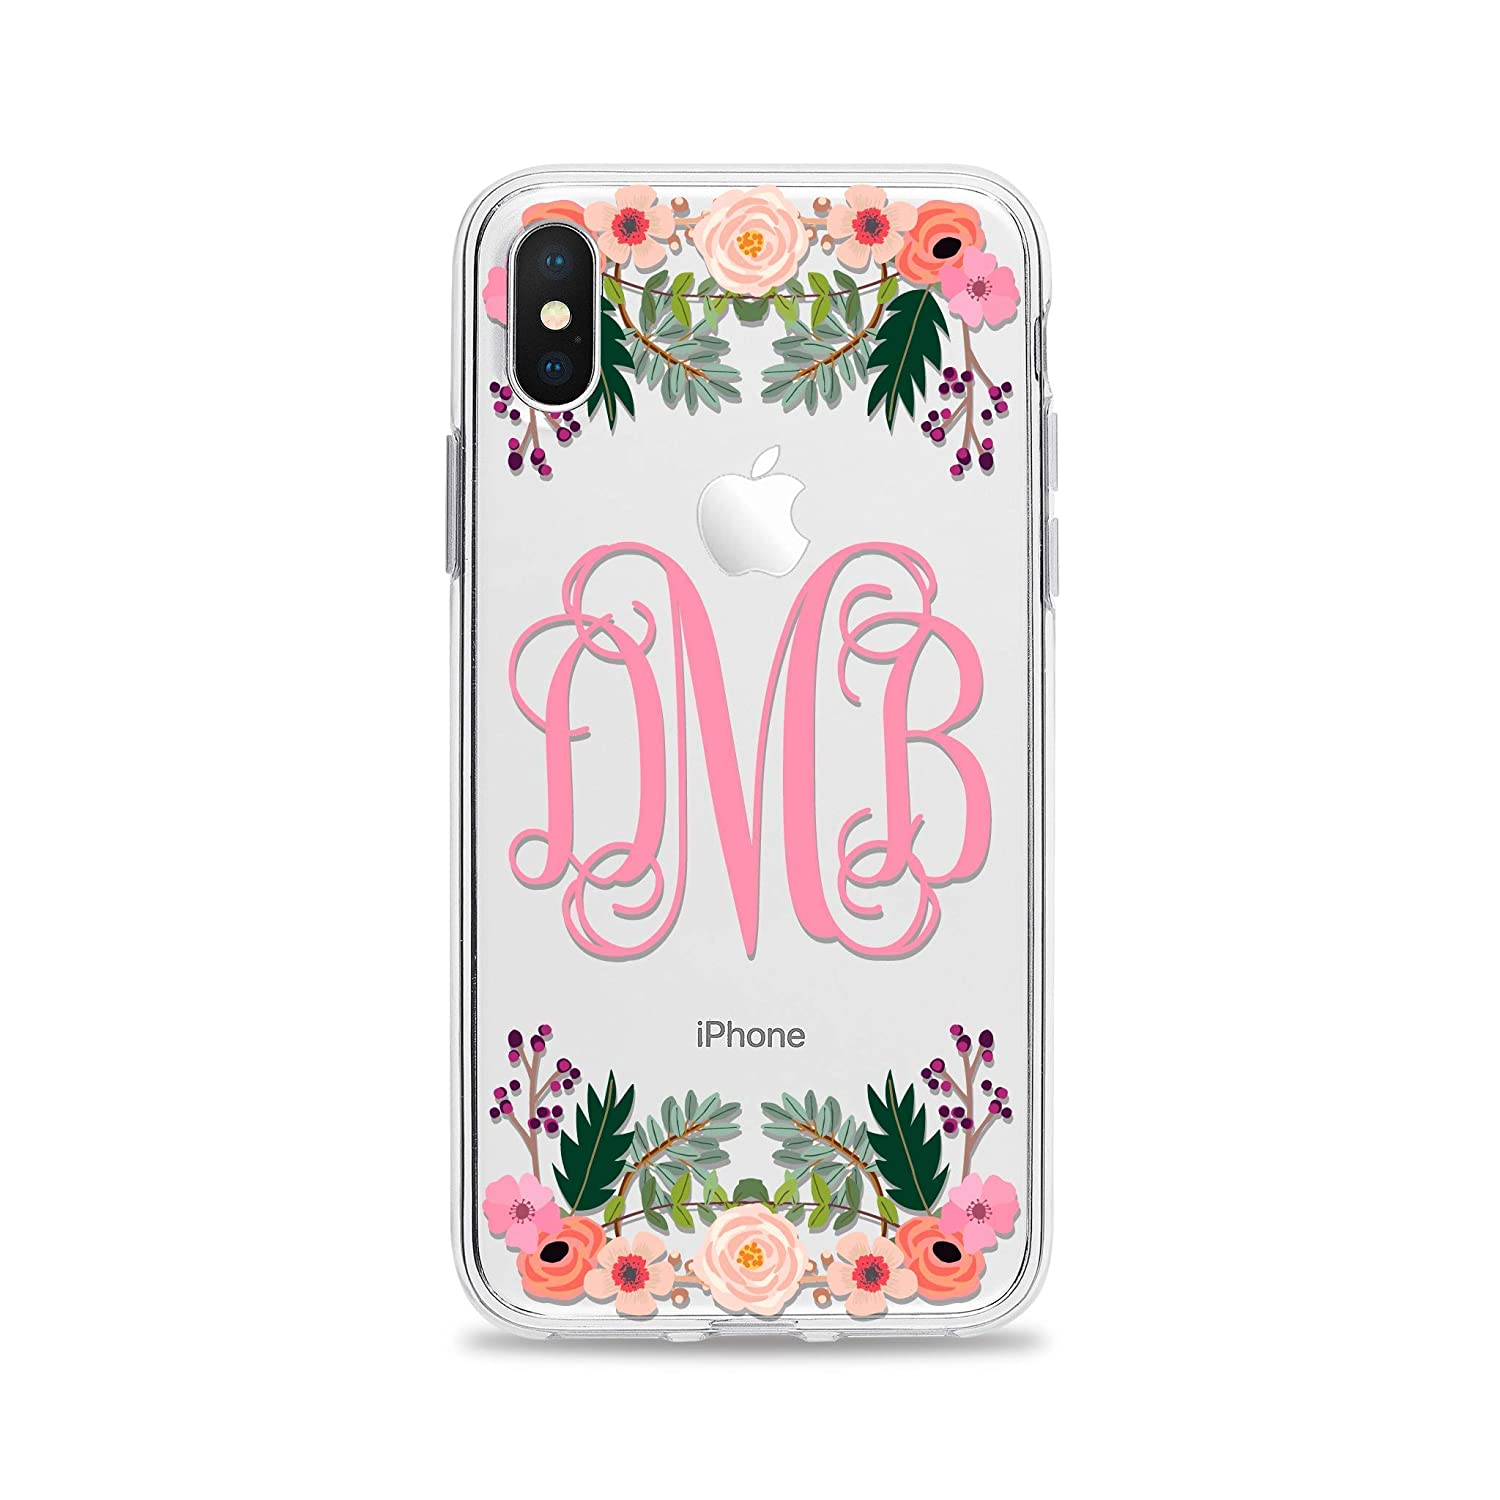 iPhone 8 Plus Case Monogram Cell Phone Cover for Apple iPhone XS X 10 7 6s 6 SE 5s 5 Samsung Galaxy S9 S8 S7 edge S6 Clear Transparent Rubber TPU with Charming Floral Design